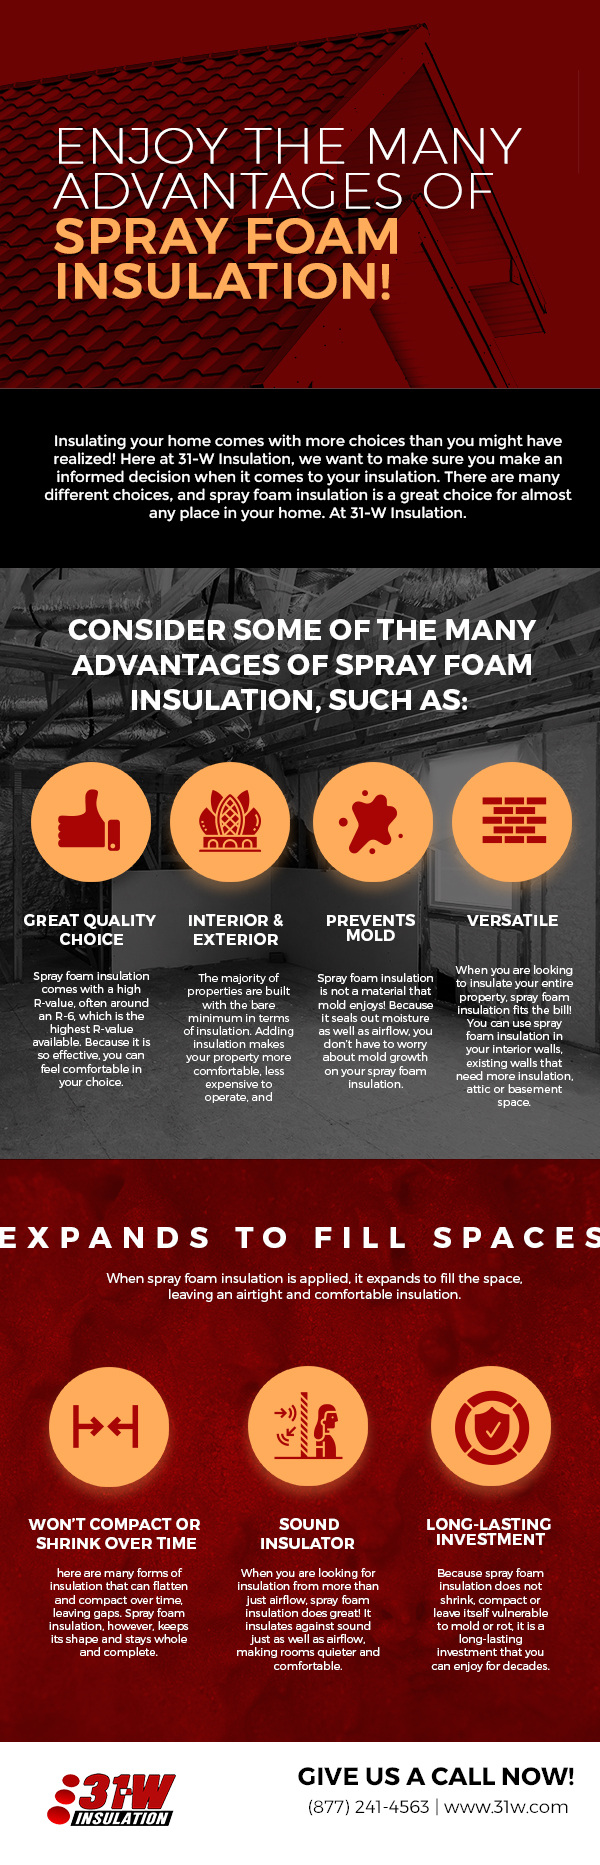 enjoy the many advantages of spray foam insulation